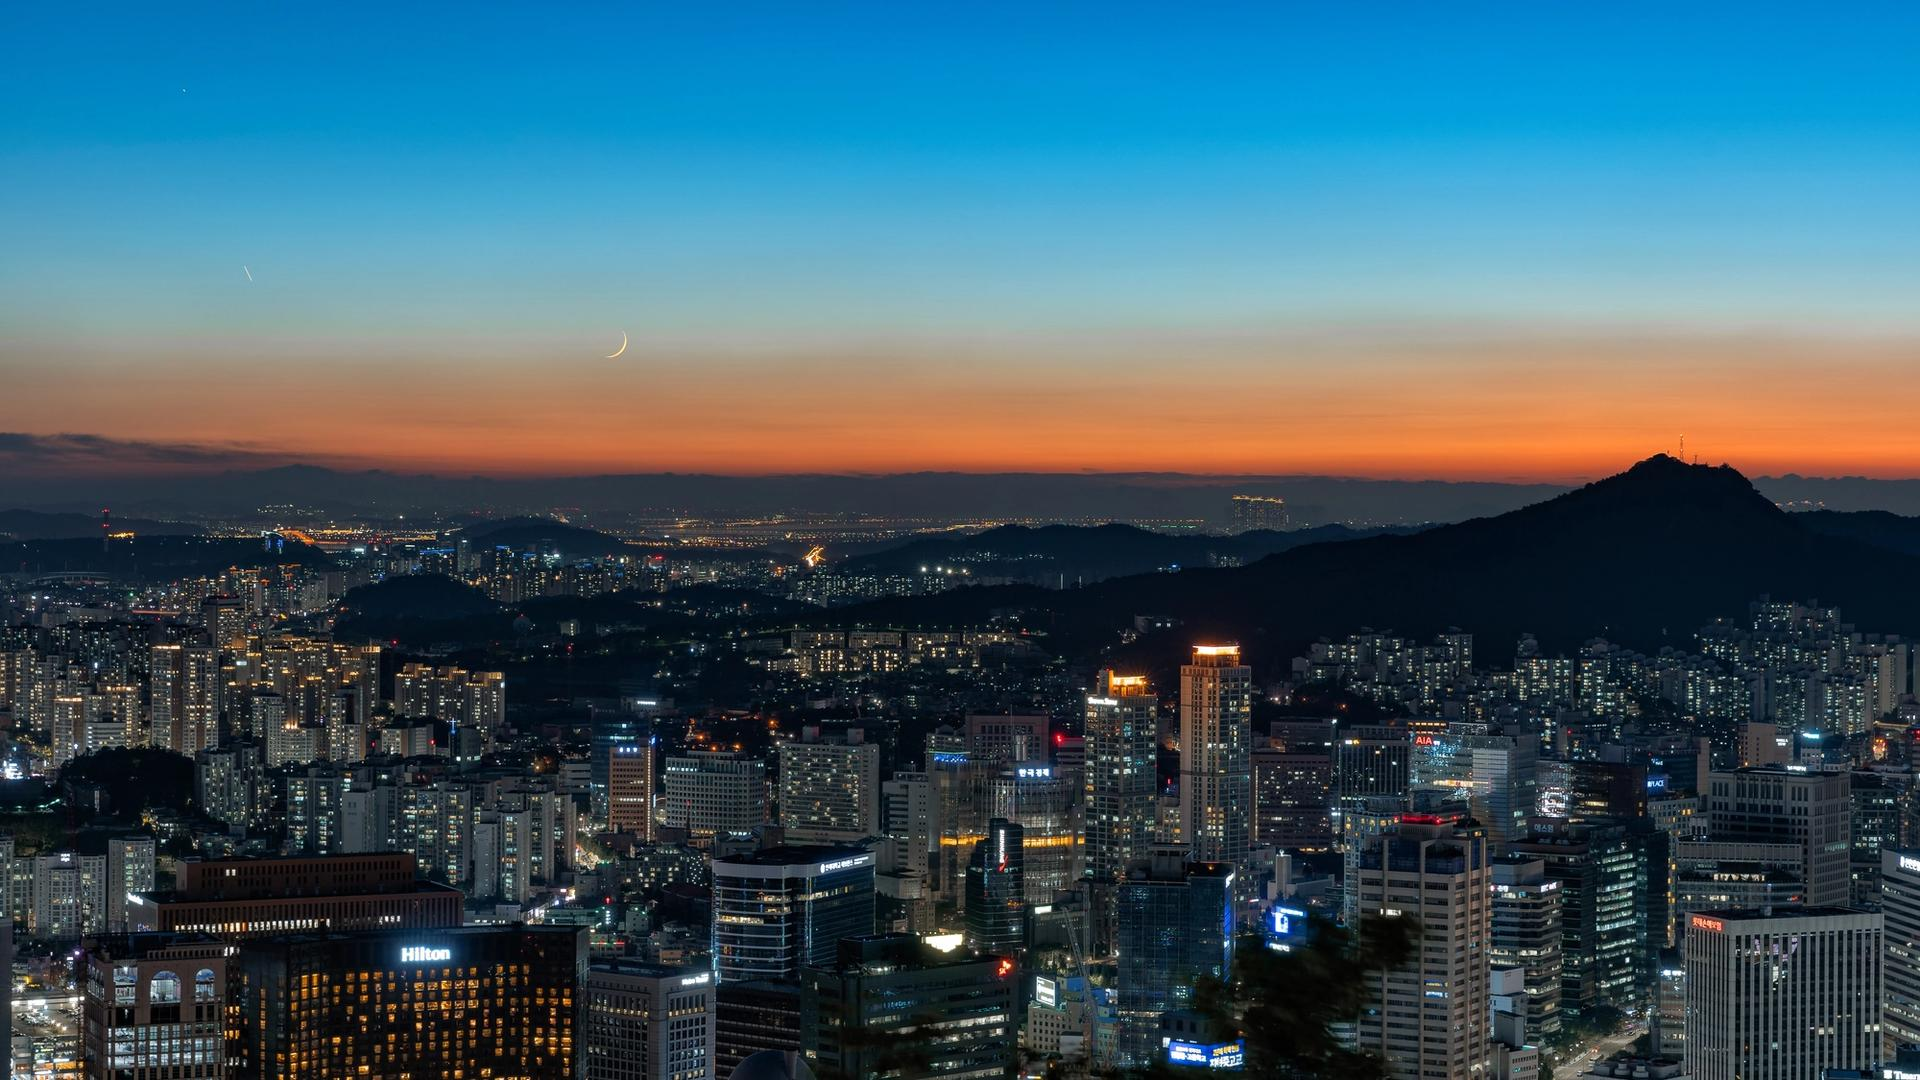 Western interest in Seoul's art scene is booming Photo: Ping Onganankun